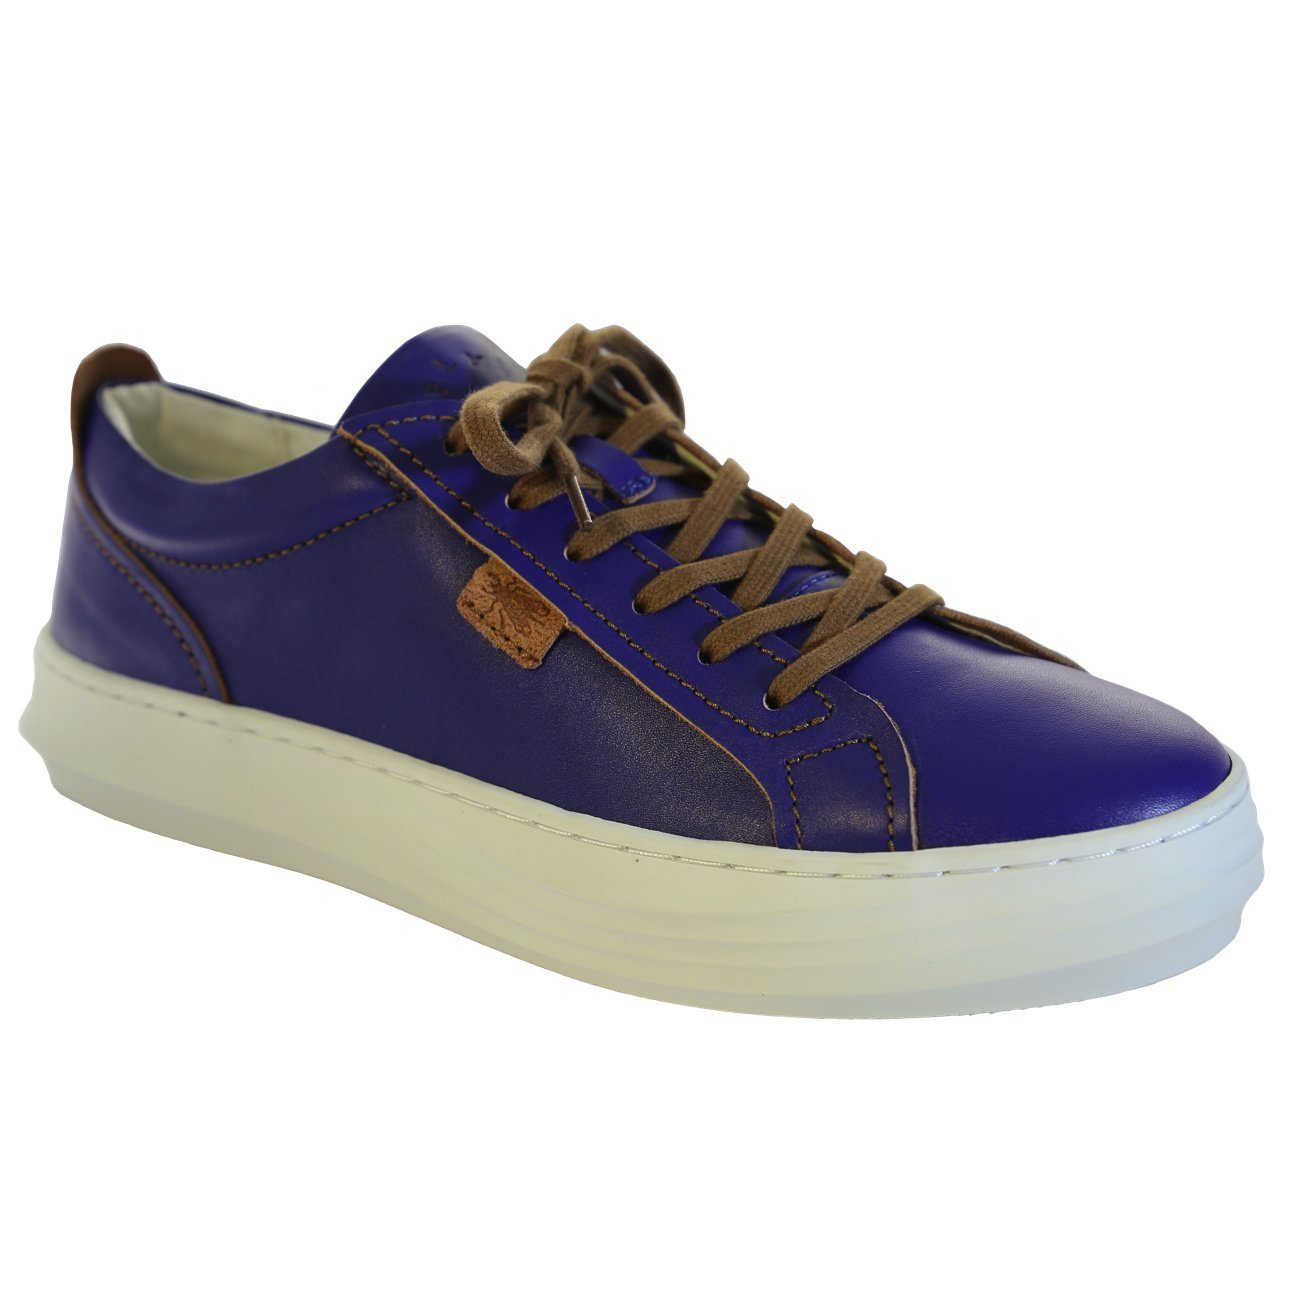 Fly London, FLS20 Cive, Laceup Shoes, Leather, Blue Shoes Fly London Blue 37